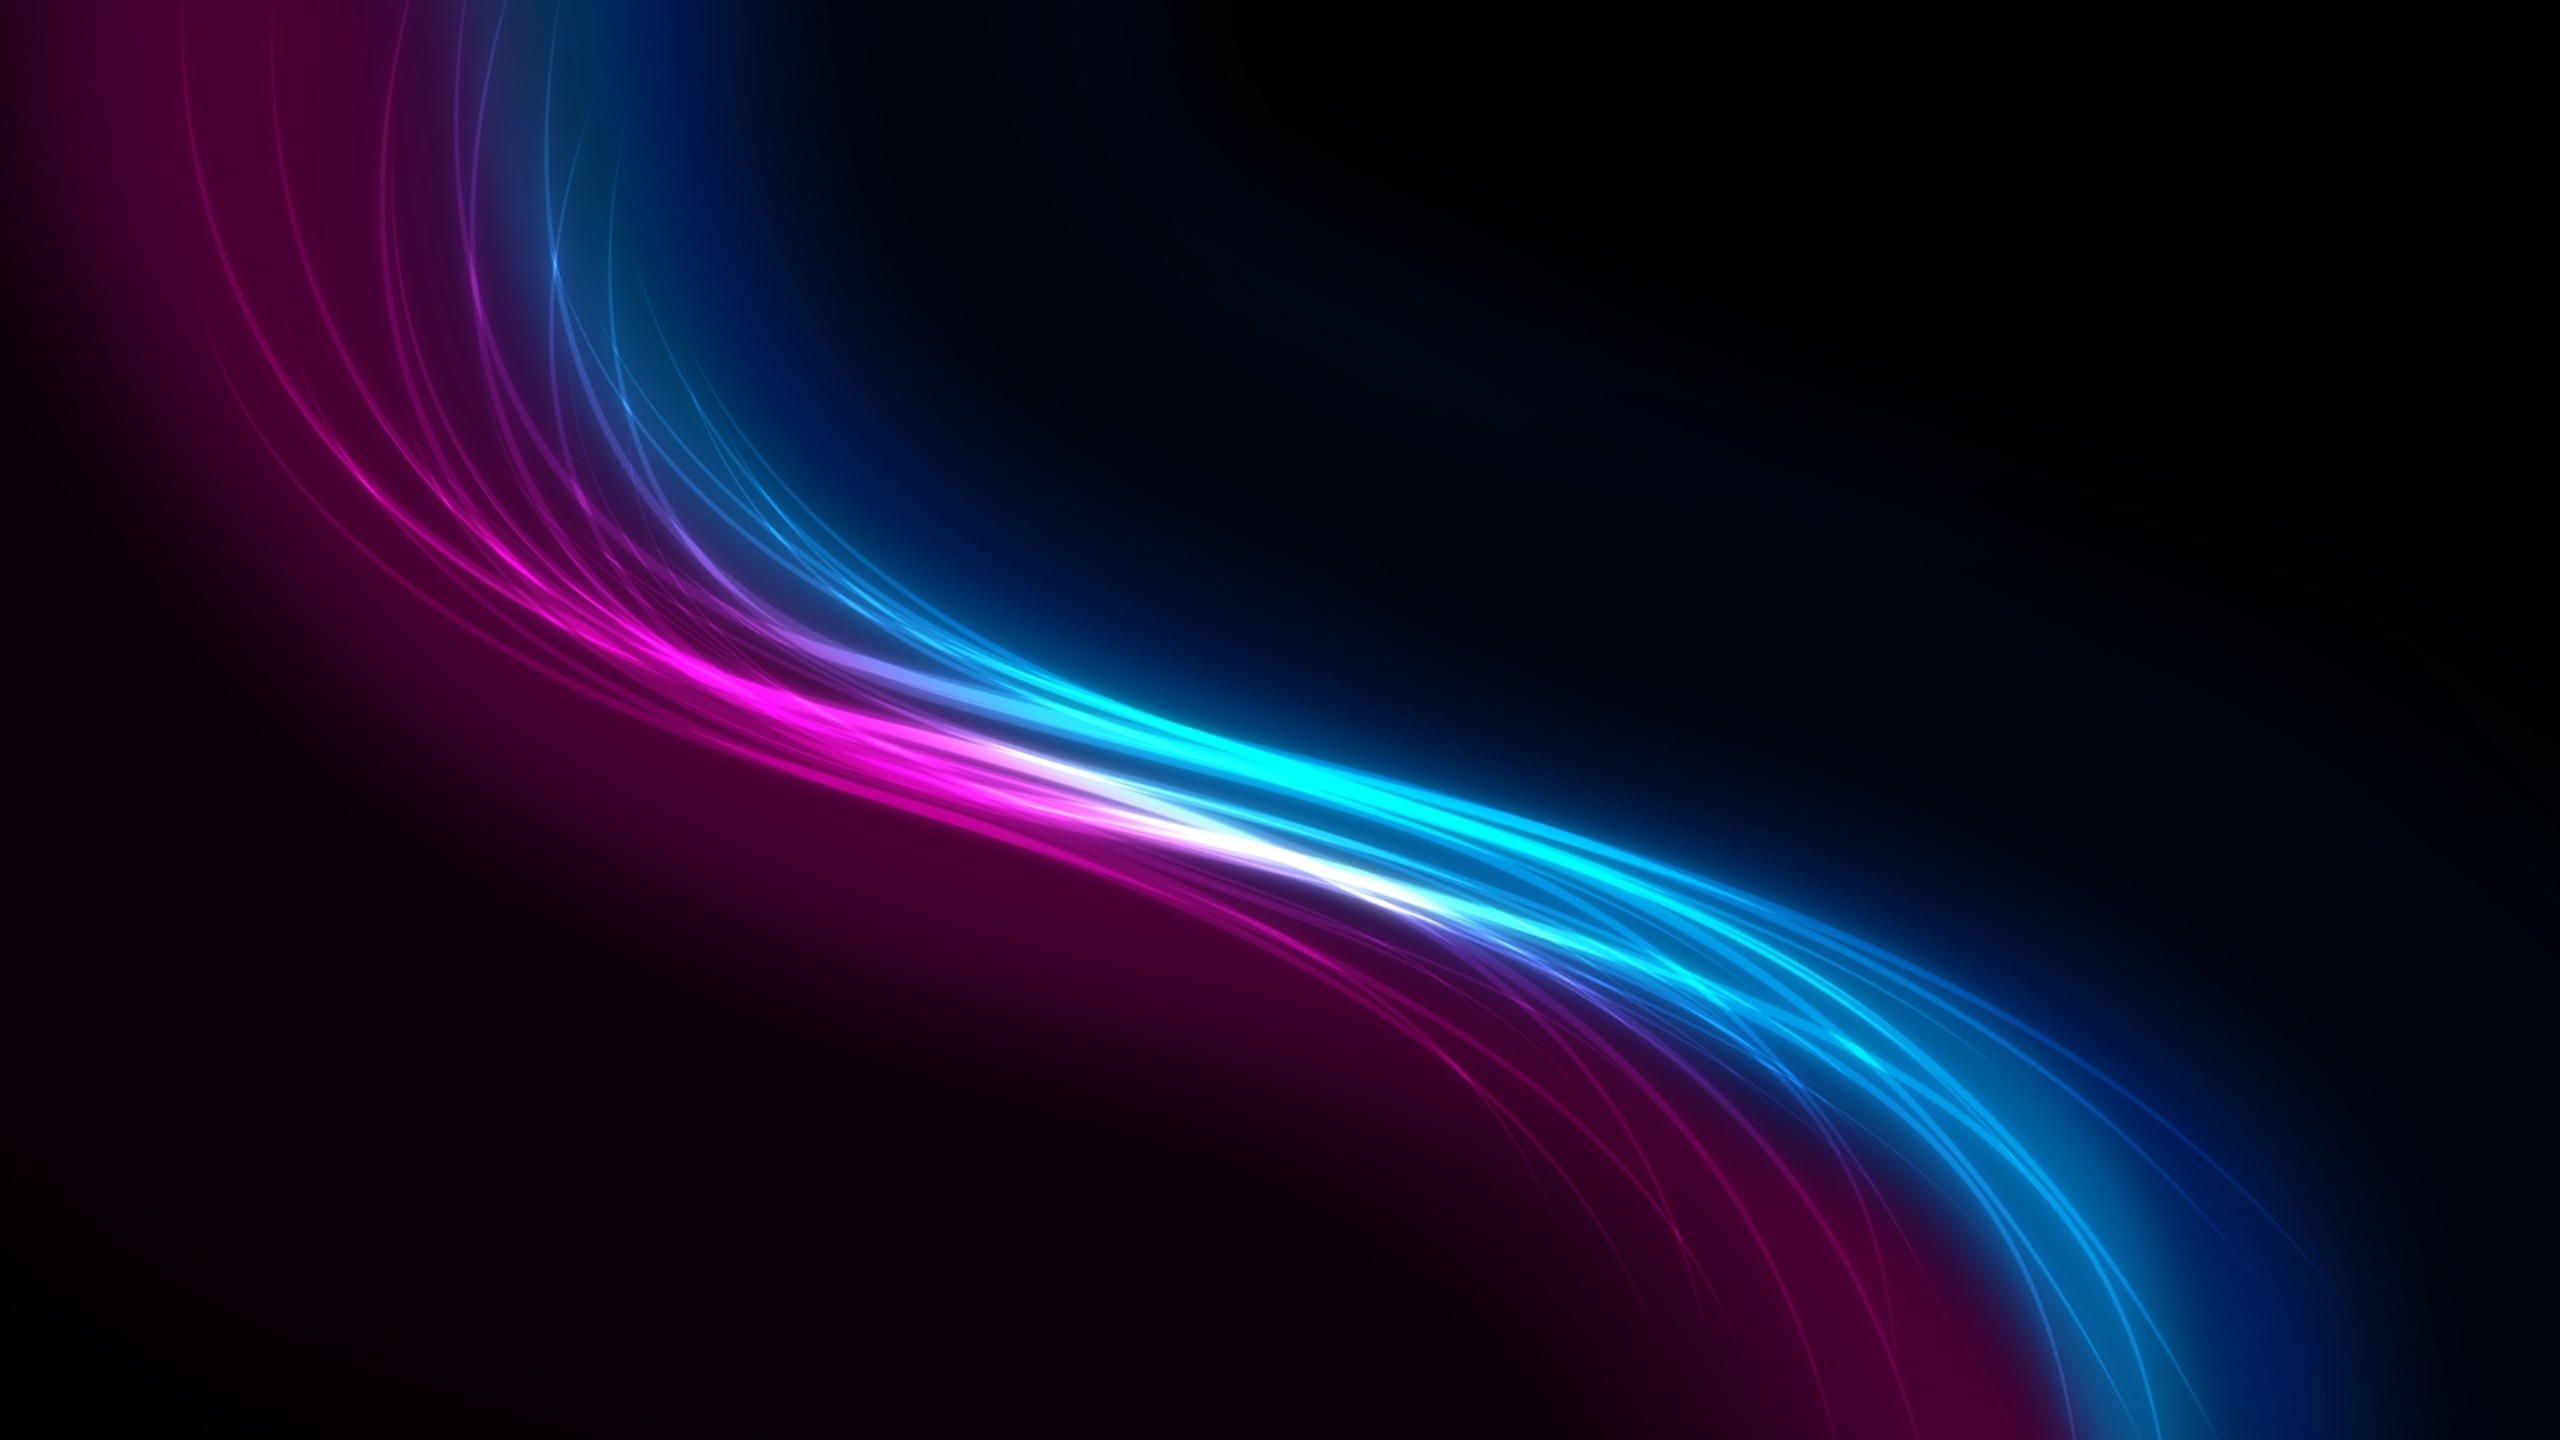 Siluet black pink and blue light abstract | HD Wallpapers